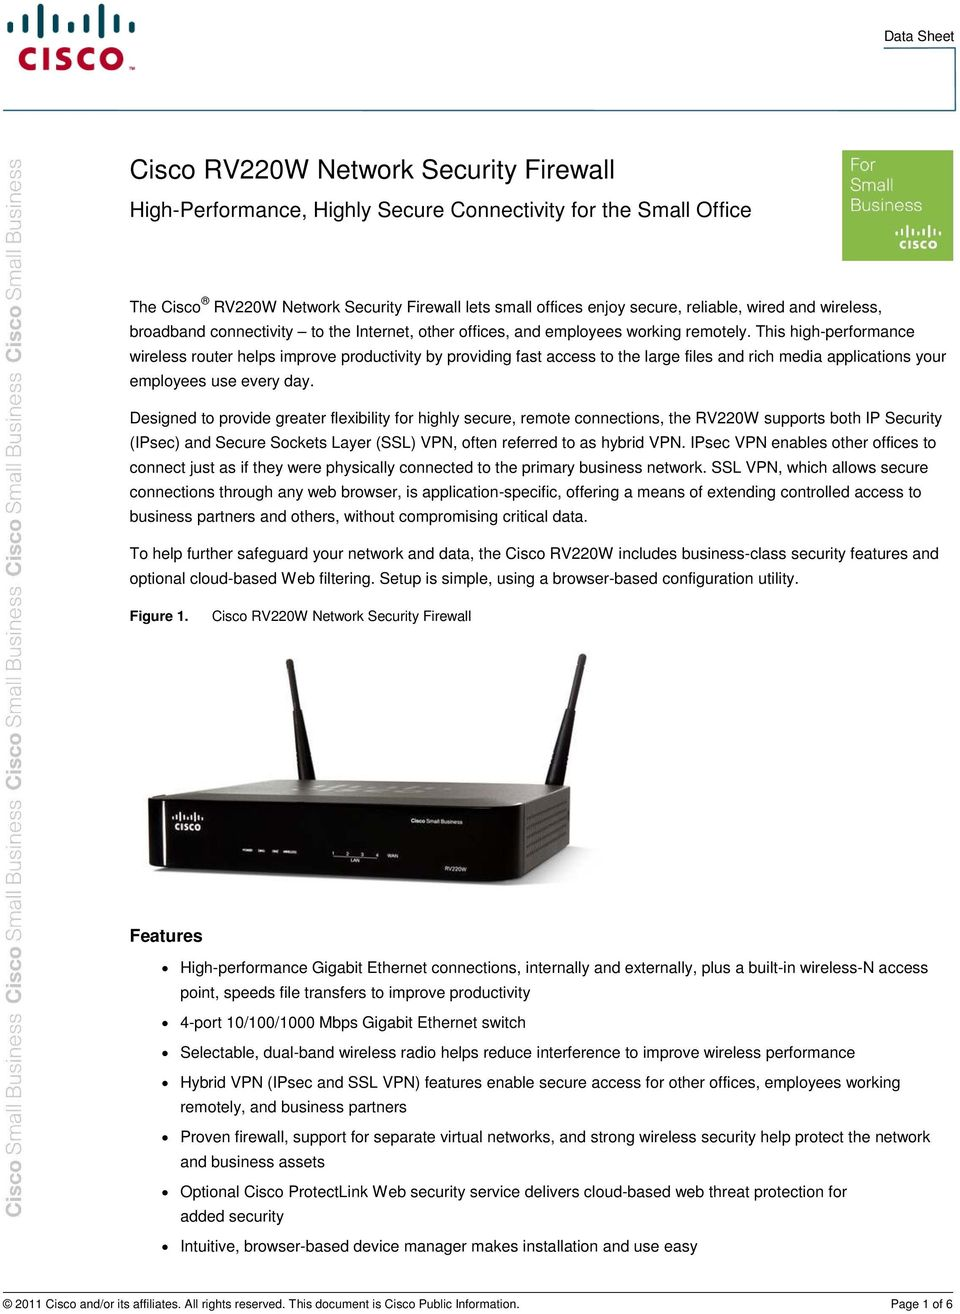 This high-performance wireless router helps improve productivity by providing fast access to the large files and rich media applications your employees use every day.